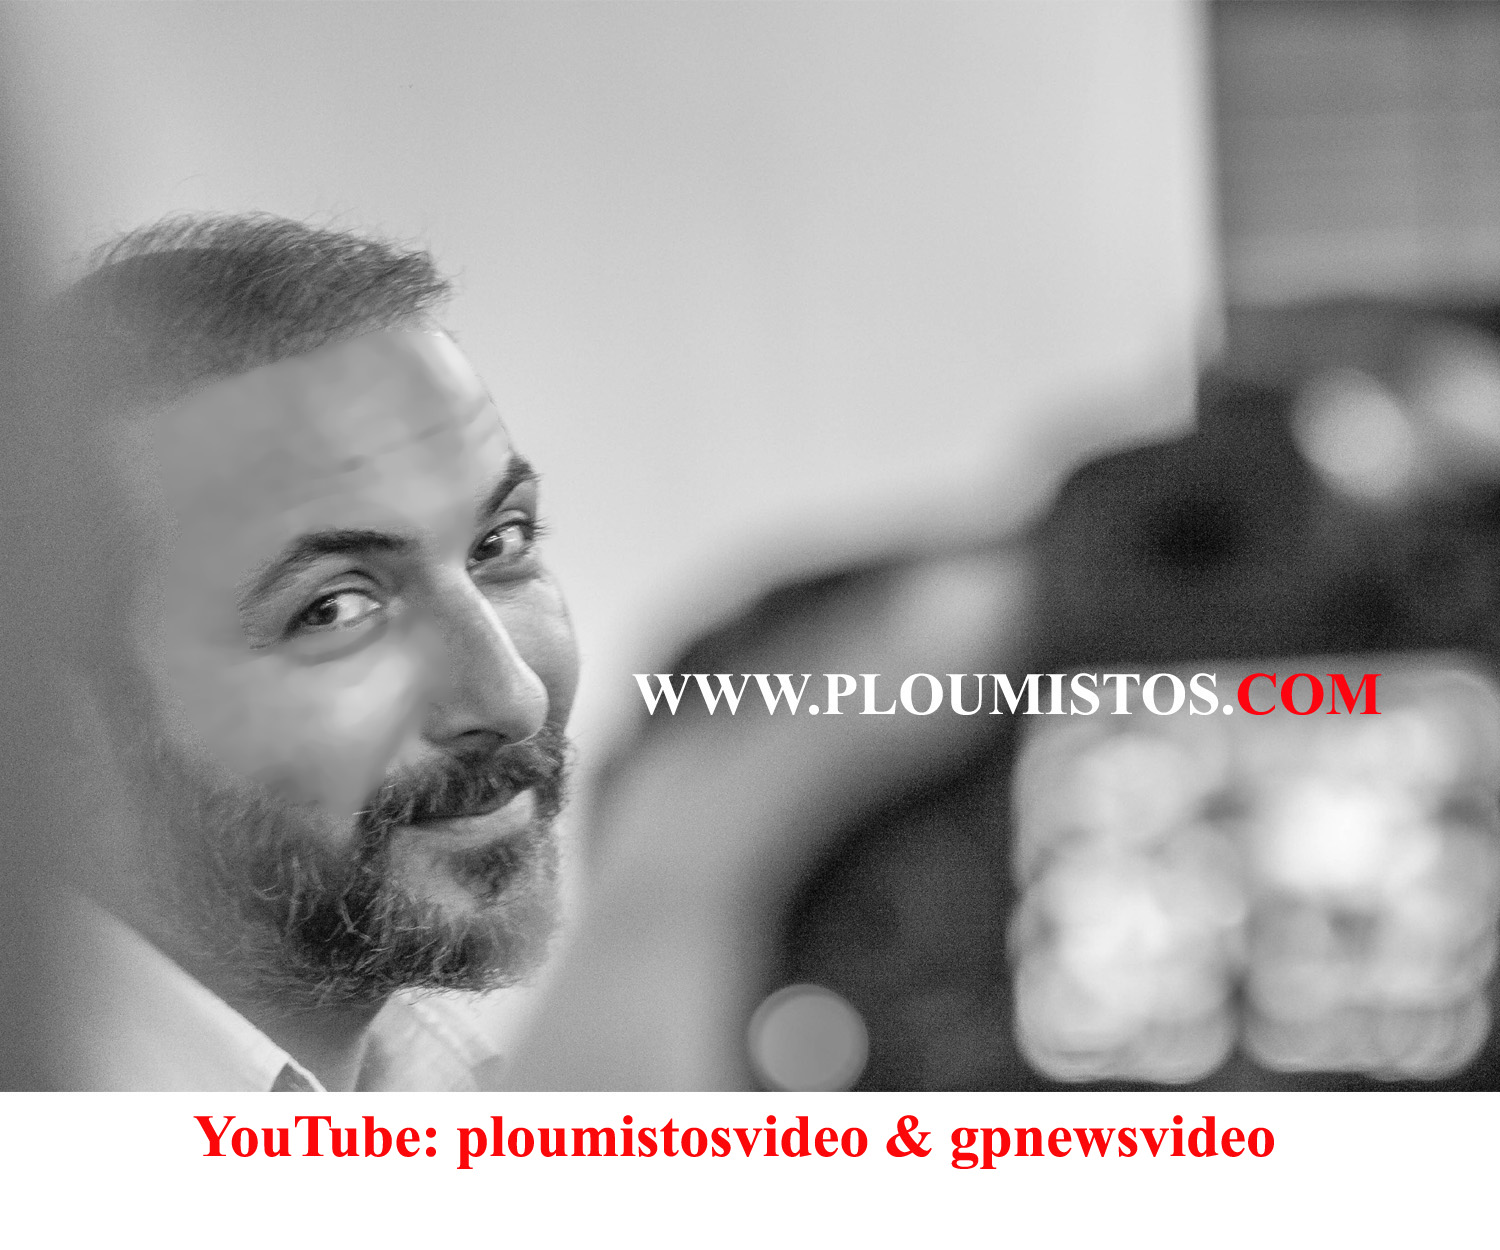 VIDEO PLOUMISTOS